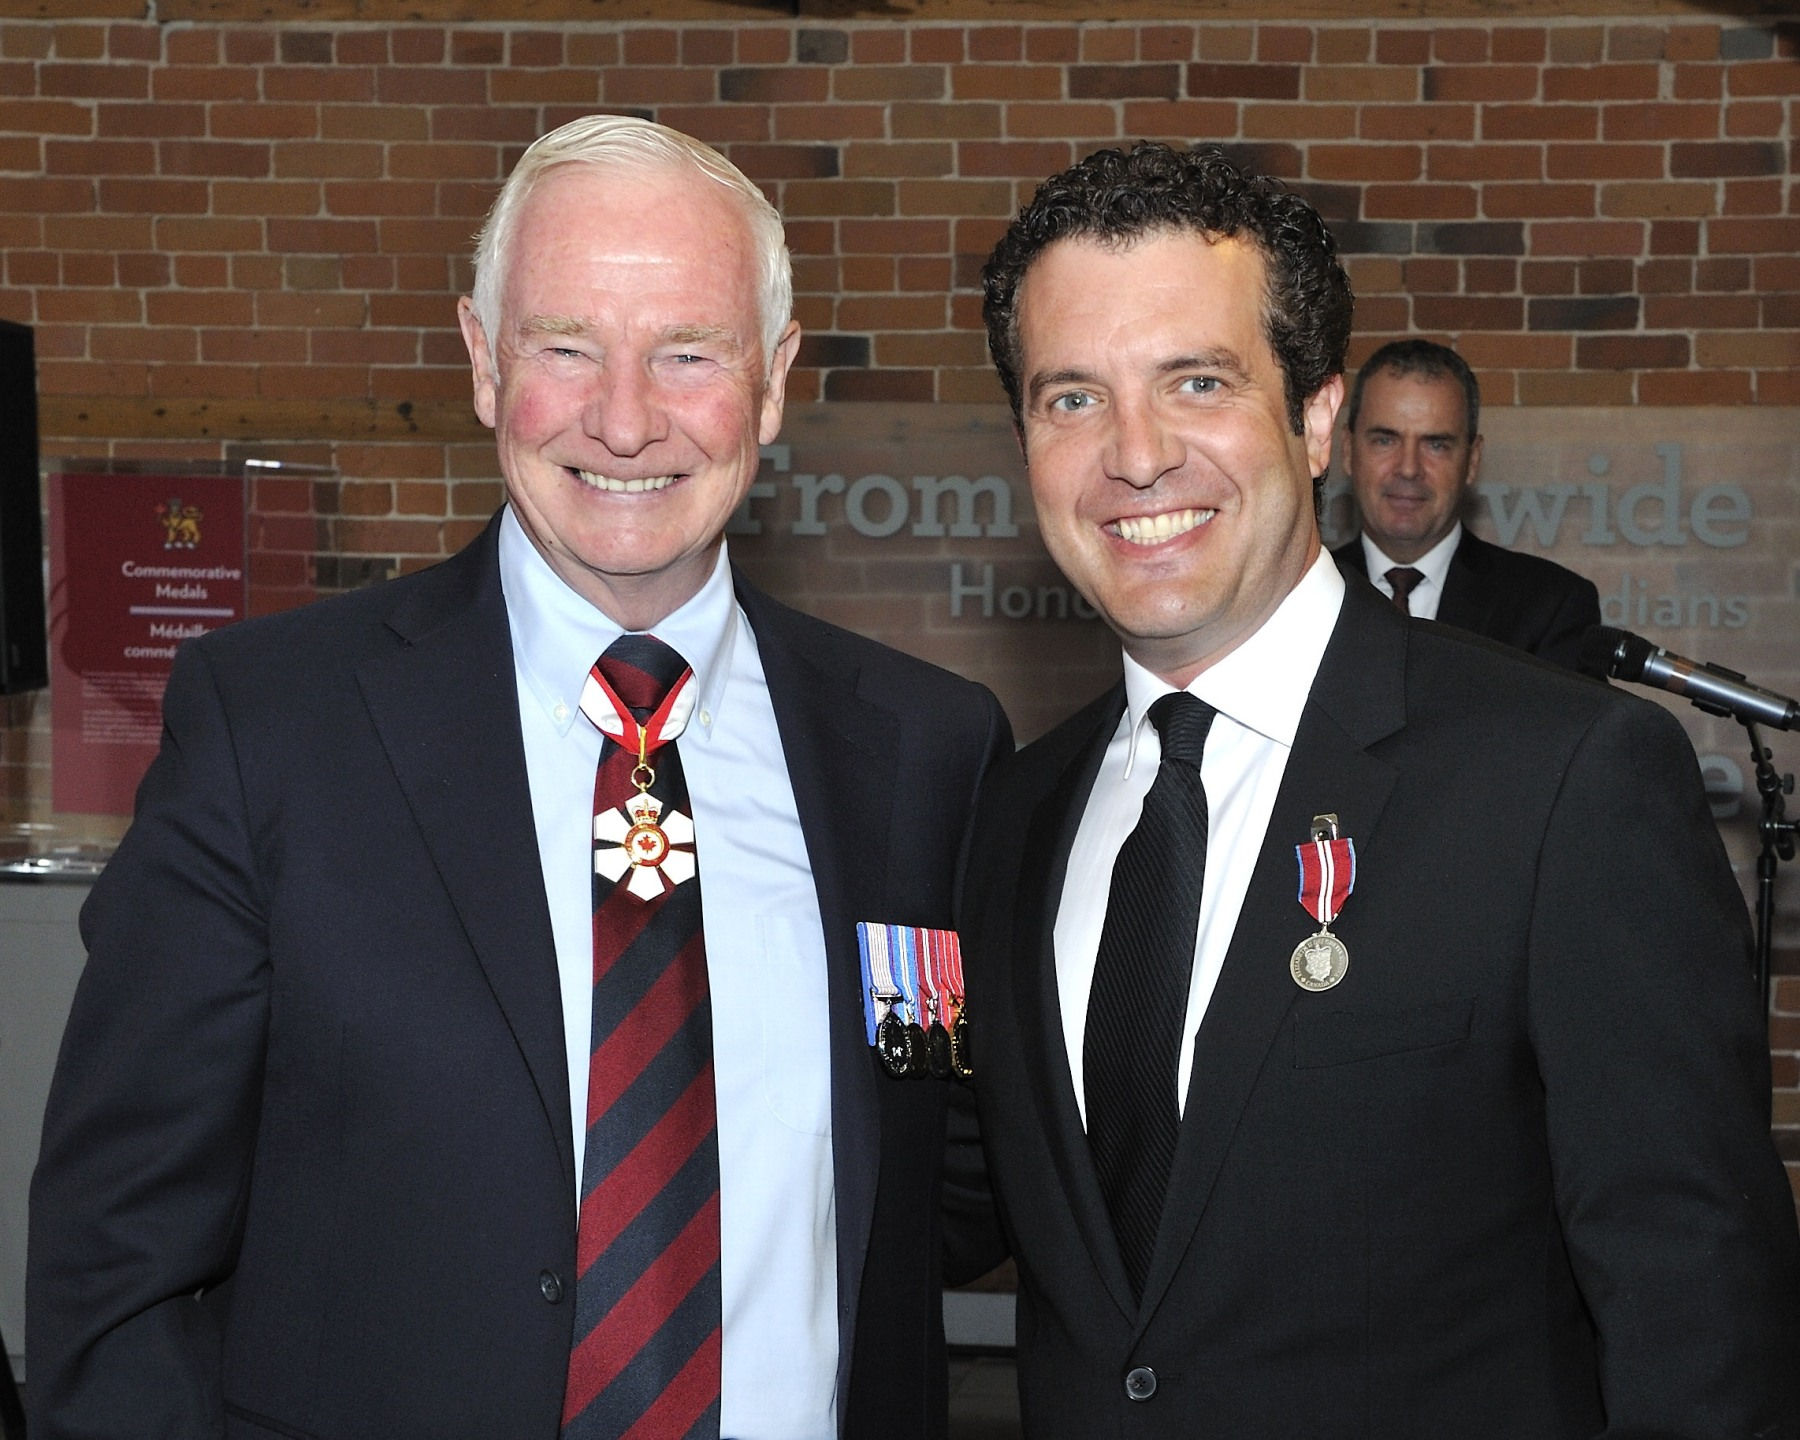 Rick Mercer (Toronto, Ontario), a well-known and acclaimed television personality, was recognized for his generosity to a number of causes, namely anti-bullying, the environment, and the fight against malaria in Africa.